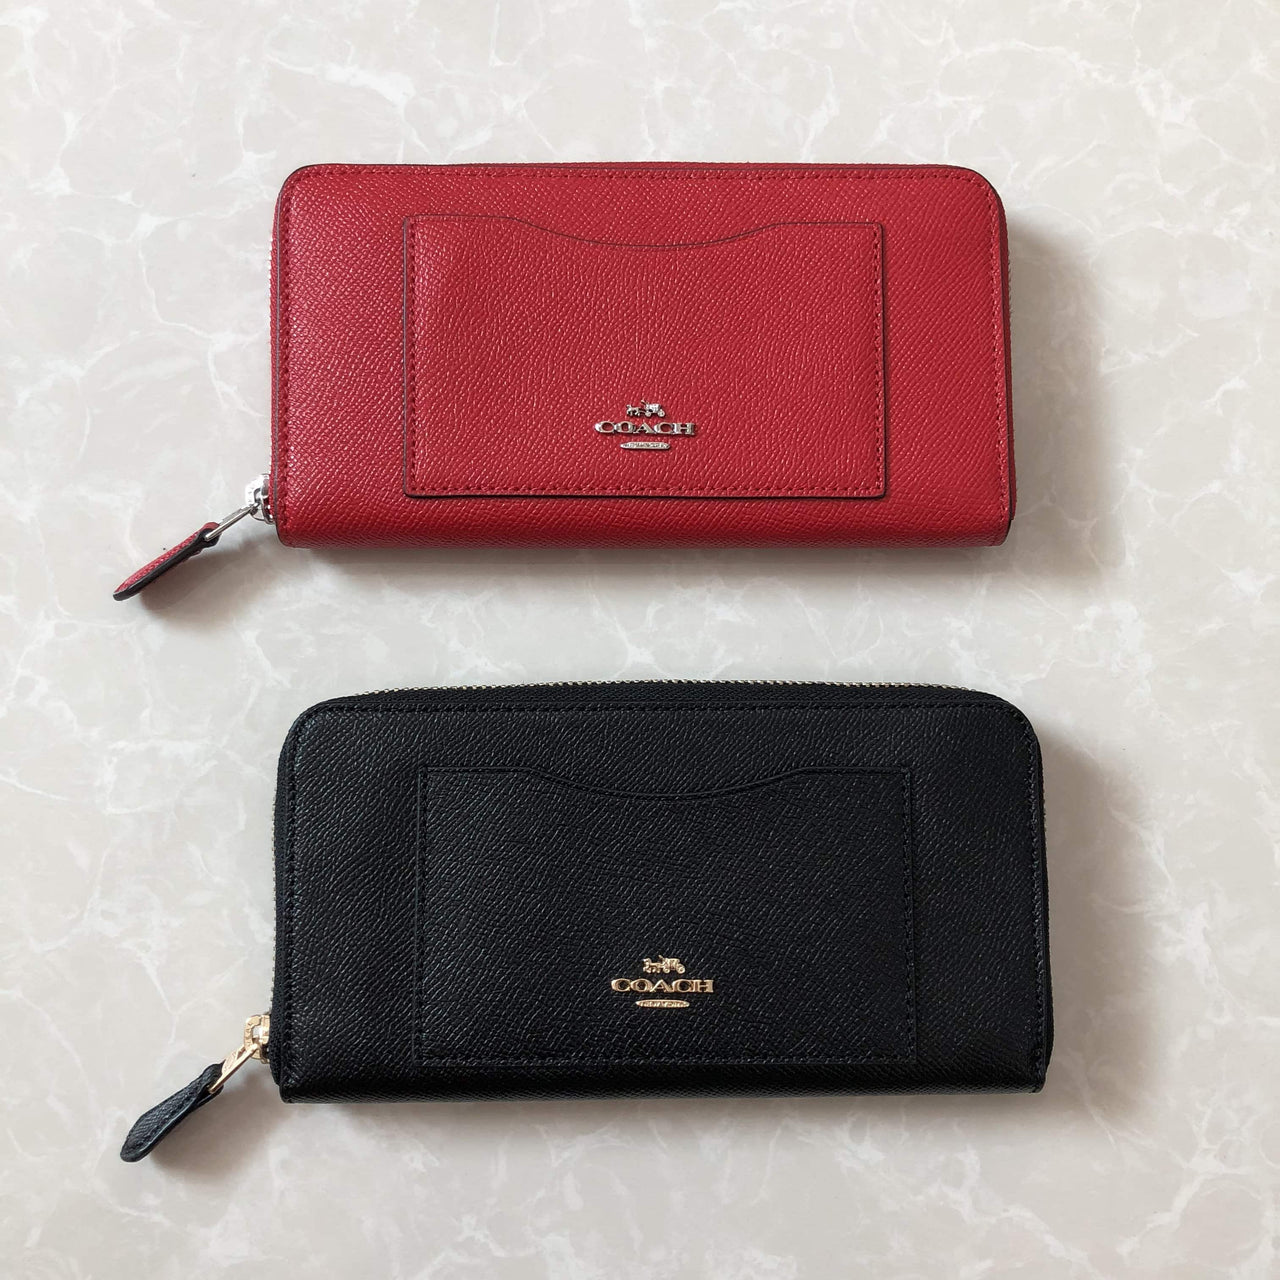 COACH ACCORDION ZIP WALLET IN CROSSGRAIN LEATHER - LovelyMadness Clothing Online Fashion Malaysia